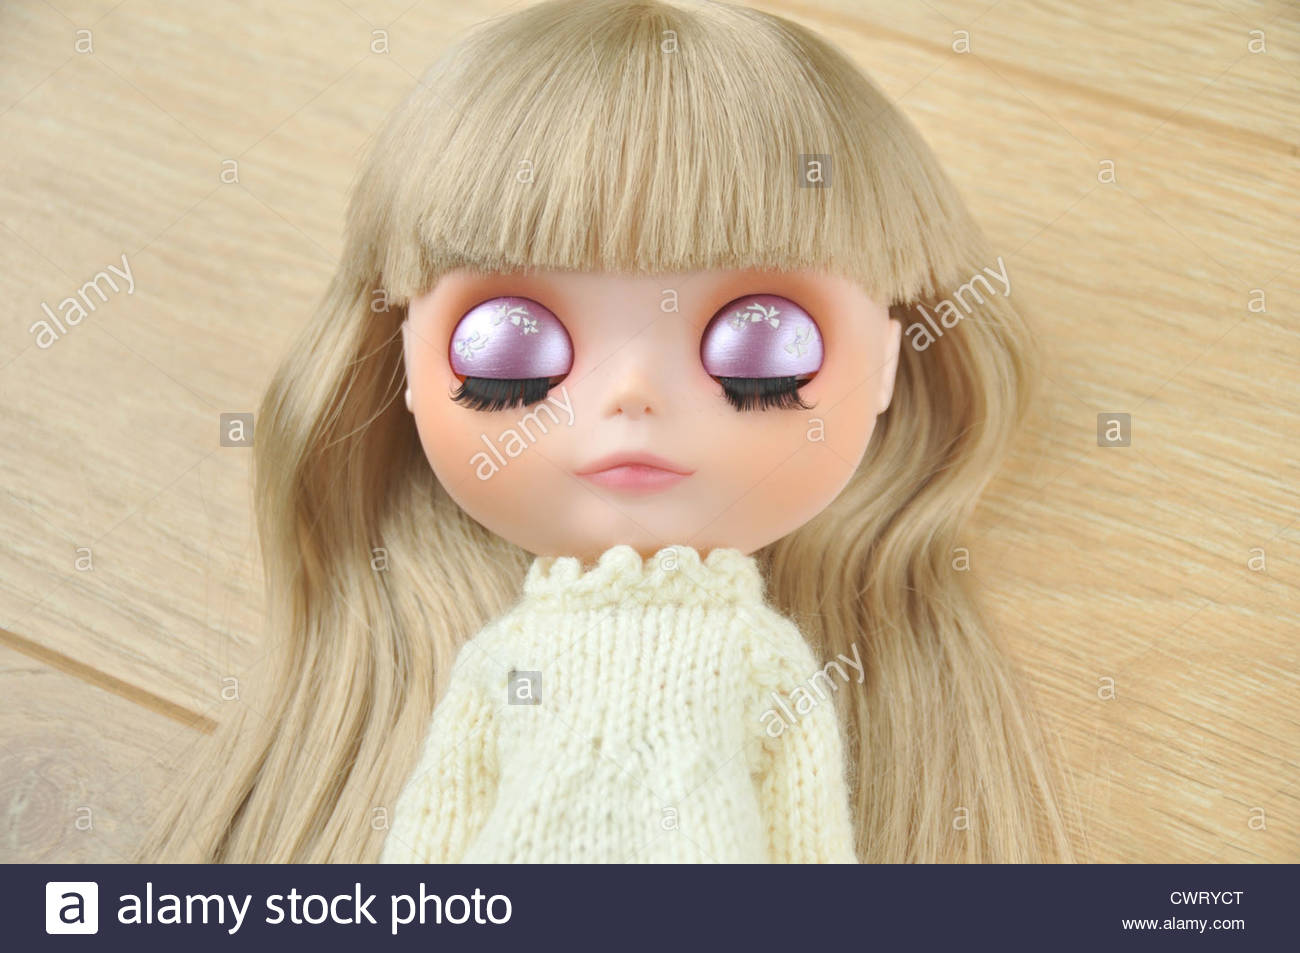 Beautiful art doll - Stock Image